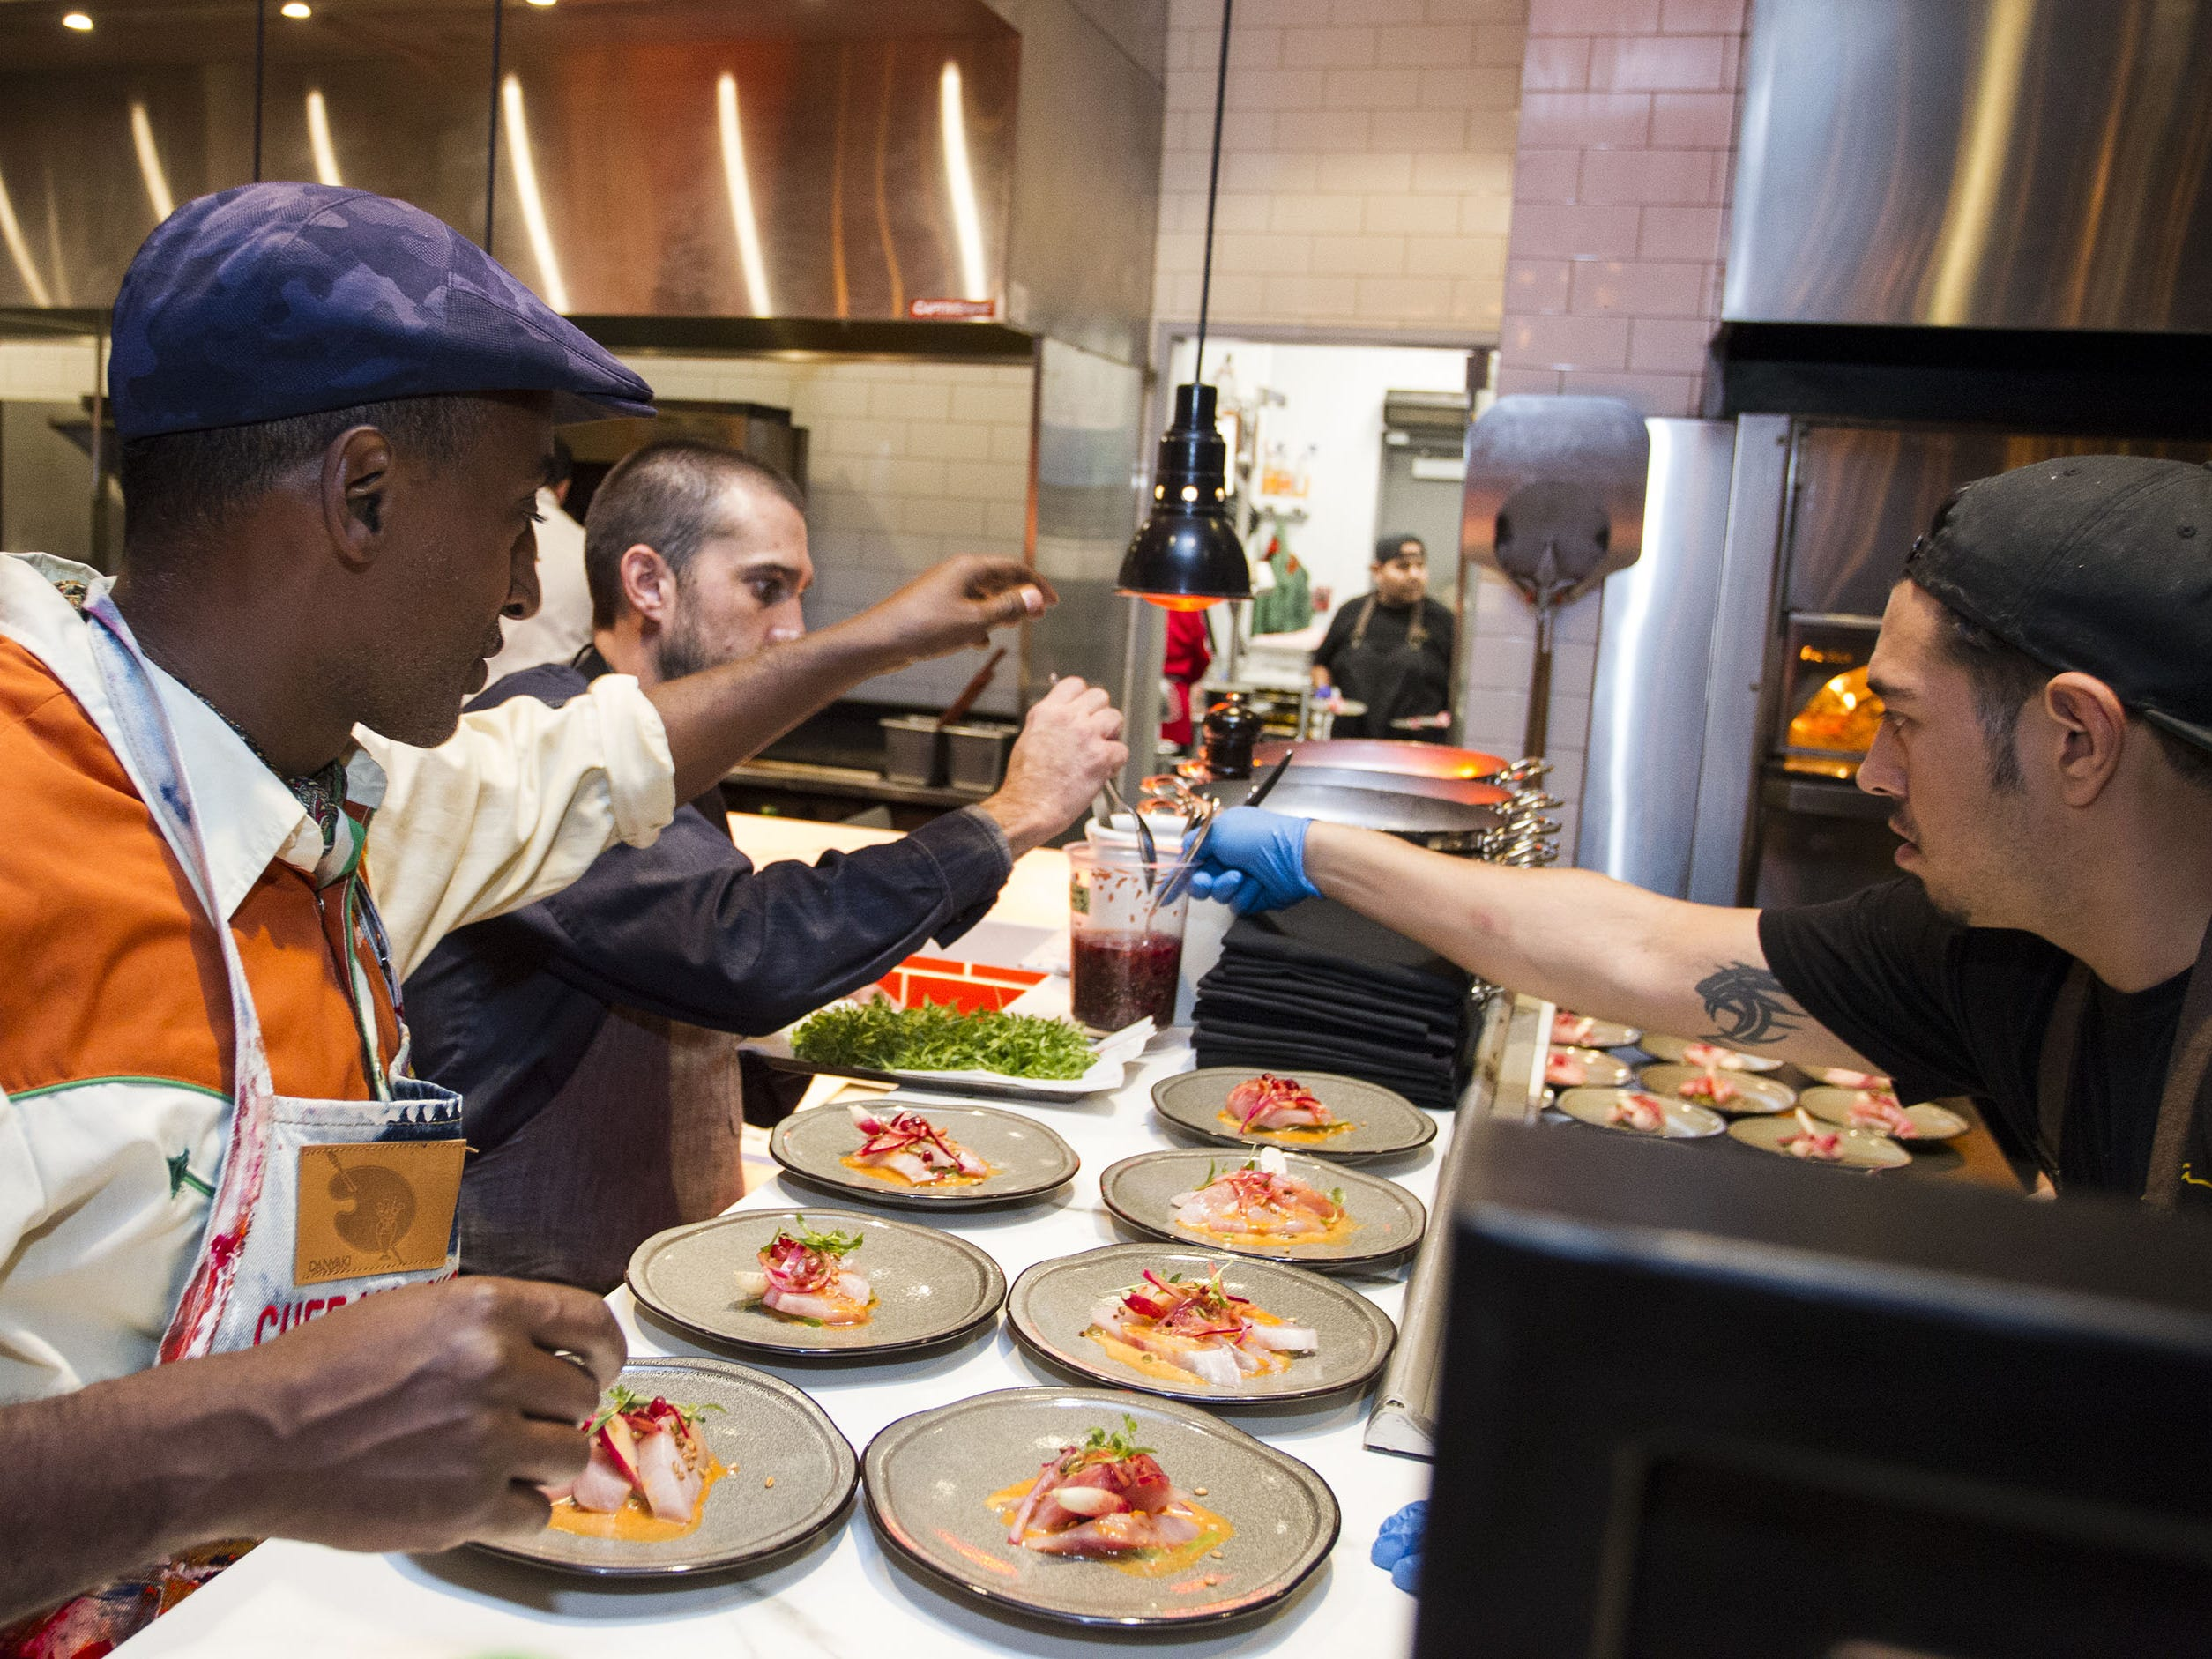 Chef Marcus Samuelsson gives advice to chefs as they prep kampachi aguachile during the exclusive kickoff dining event at Mora Italian for azcentral Wine & Food Experience.